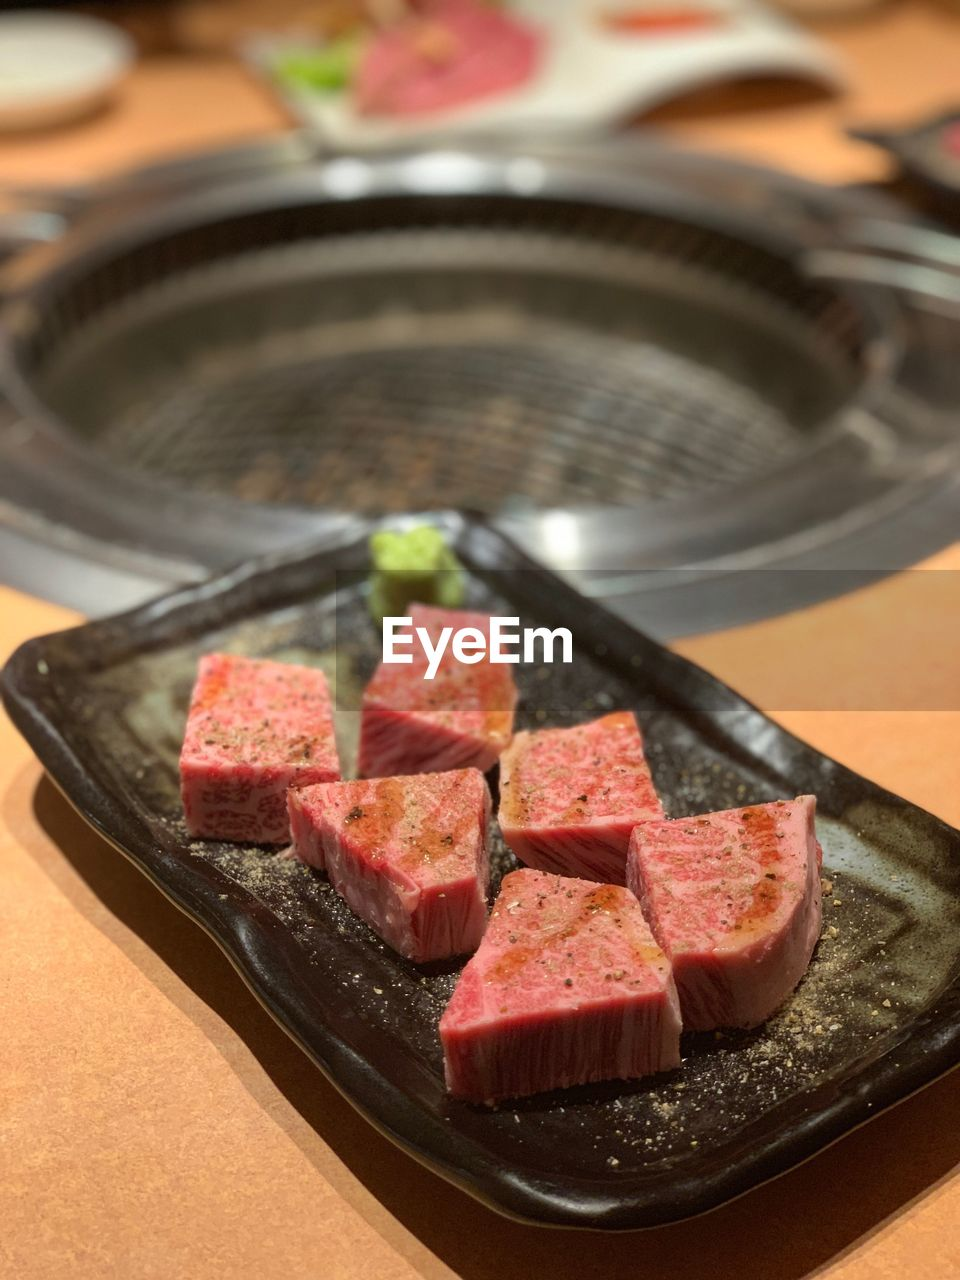 food and drink, food, freshness, meat, red meat, indoors, beef, still life, table, close-up, no people, plate, raw food, preparation, slice, steak, high angle view, ready-to-eat, japanese food, asian food, tray, temptation, dinner